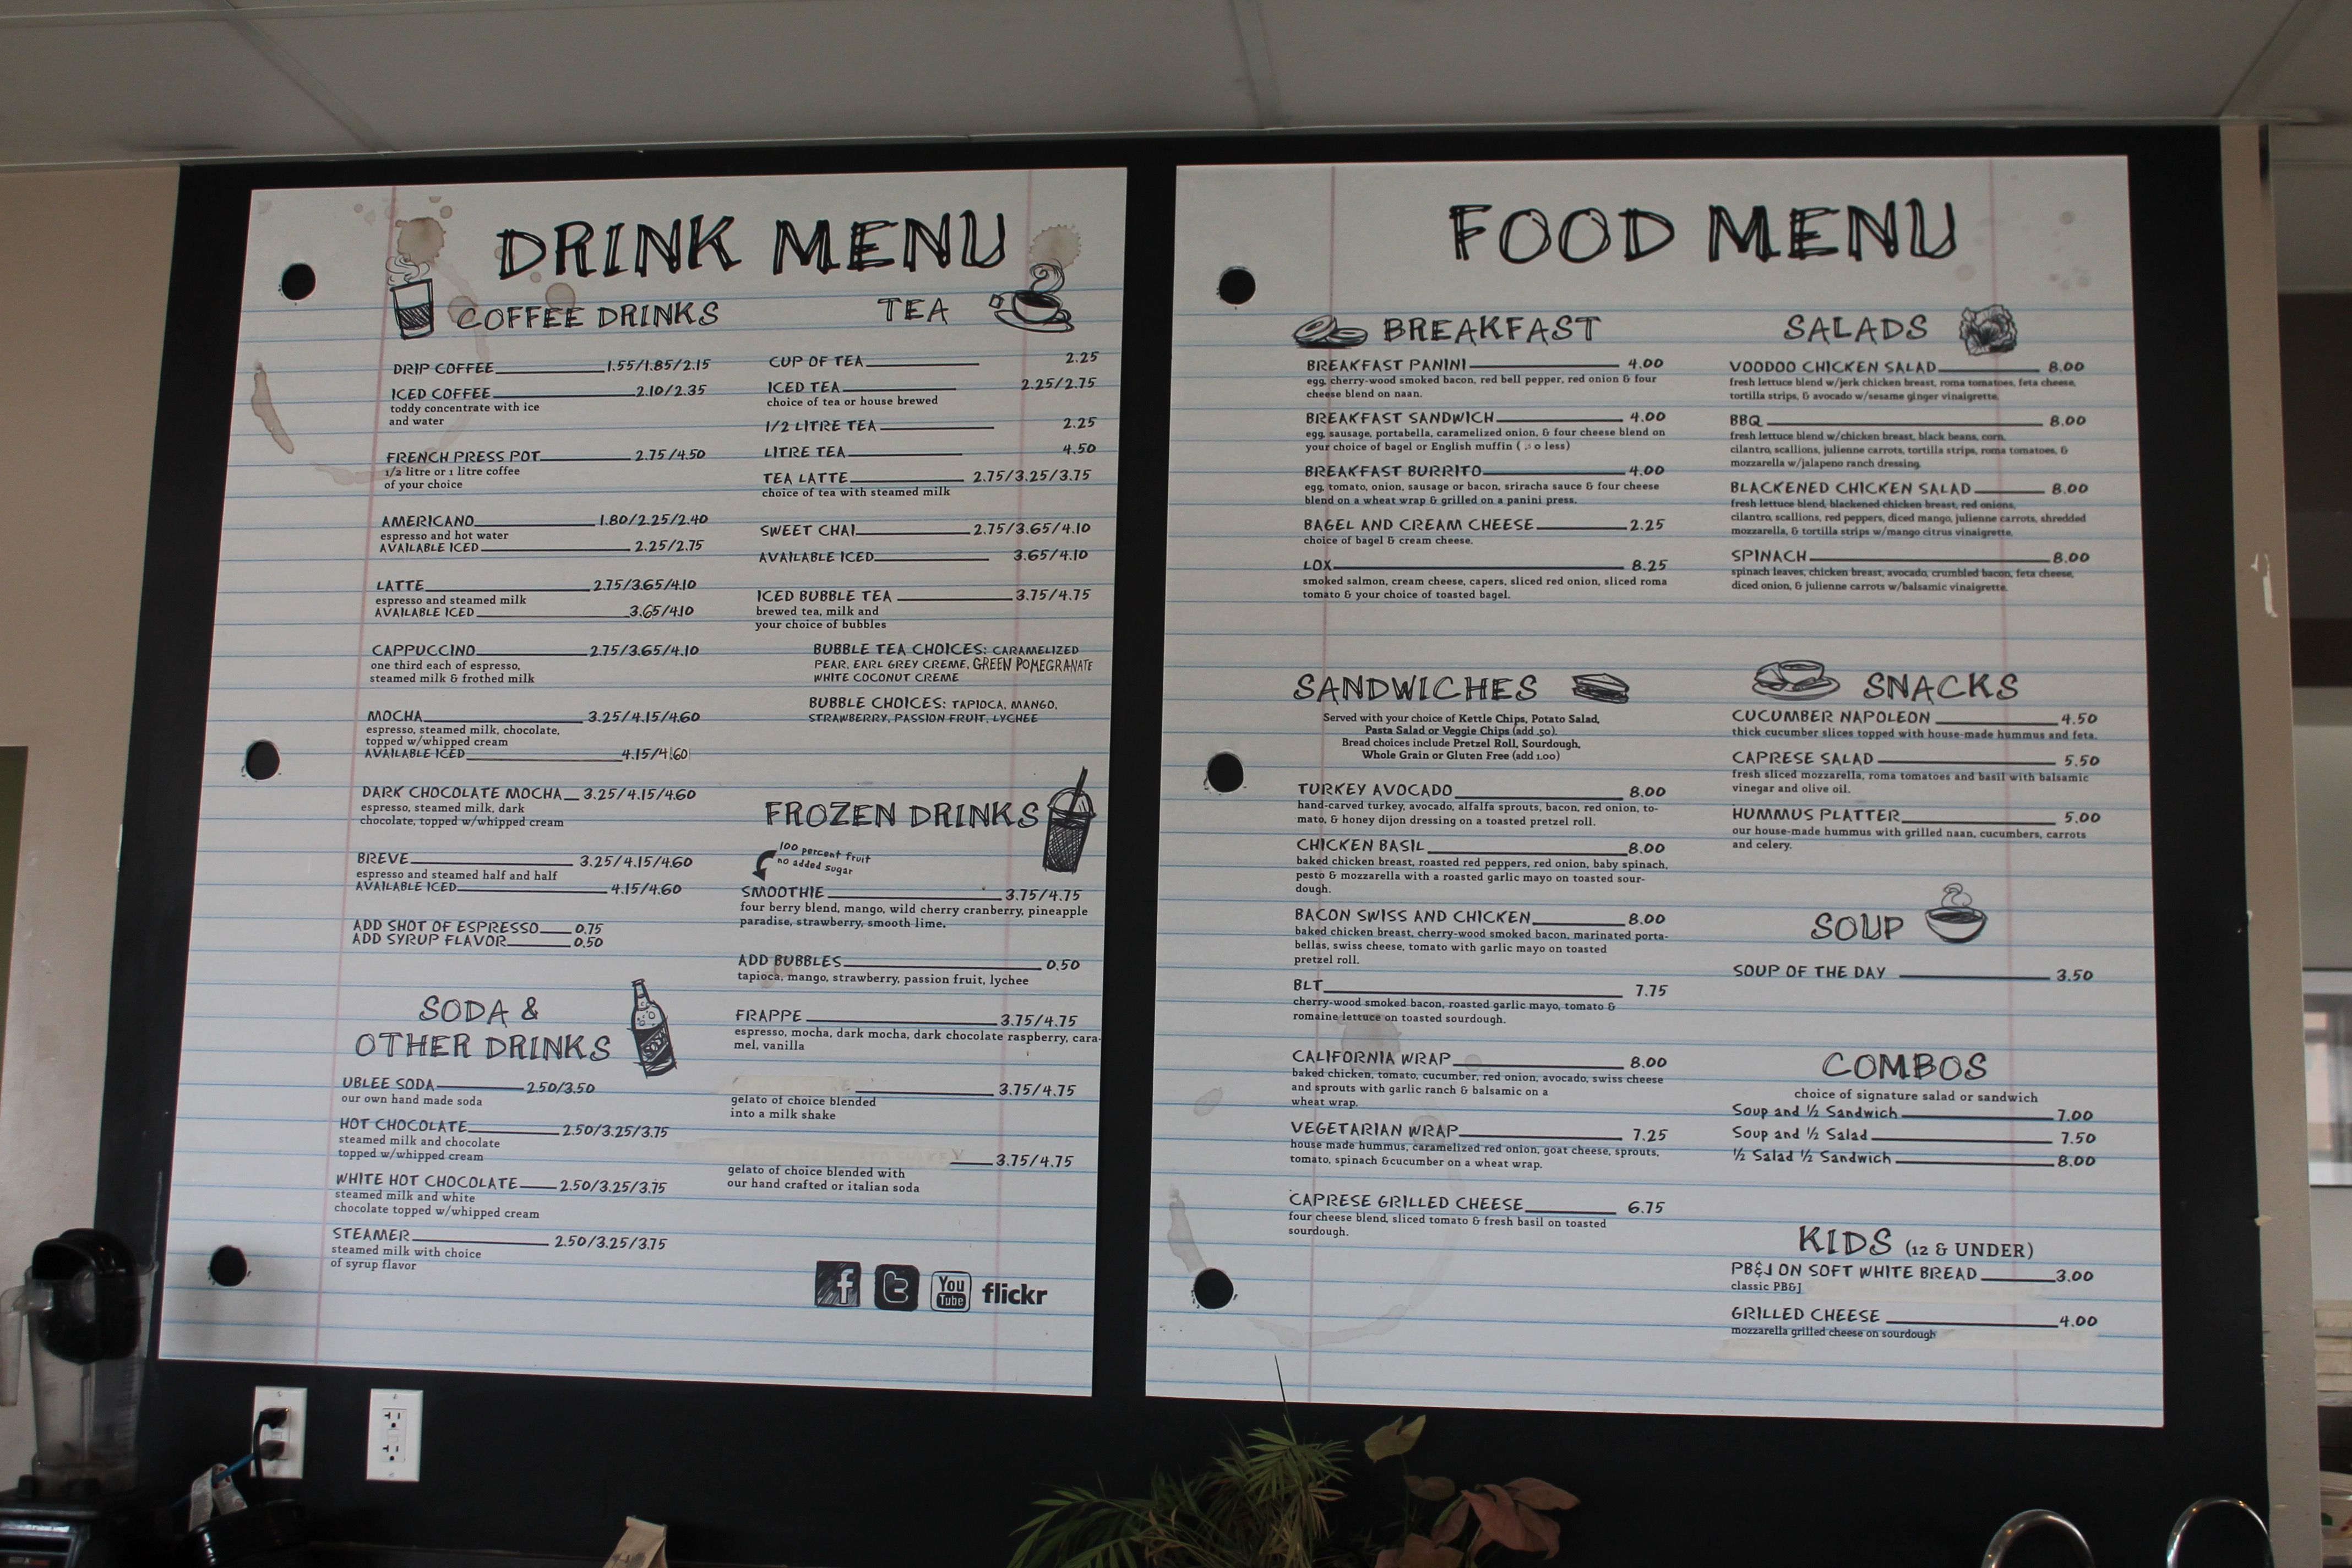 We wanted to create a clever menu board that would compliment their unique, off campus atmosphere. The board was designed to resemble notes and doodles captured in a notebook of a fictional student, complete with coffee cup stains.